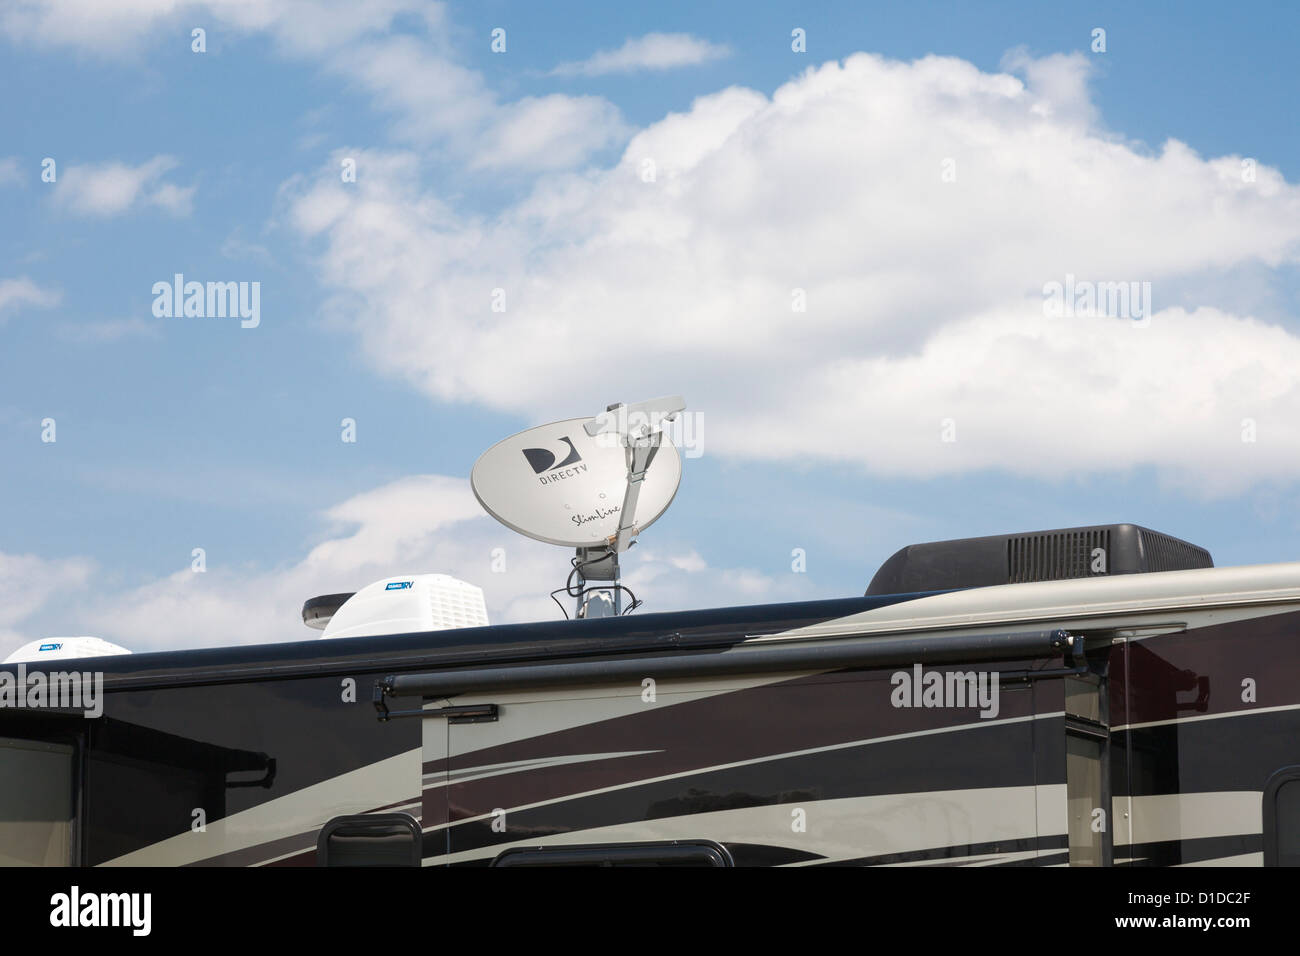 Direct Tv Satellite >> Direct Tv Satellite Dish Mounted On Top Of A Luxury Motor